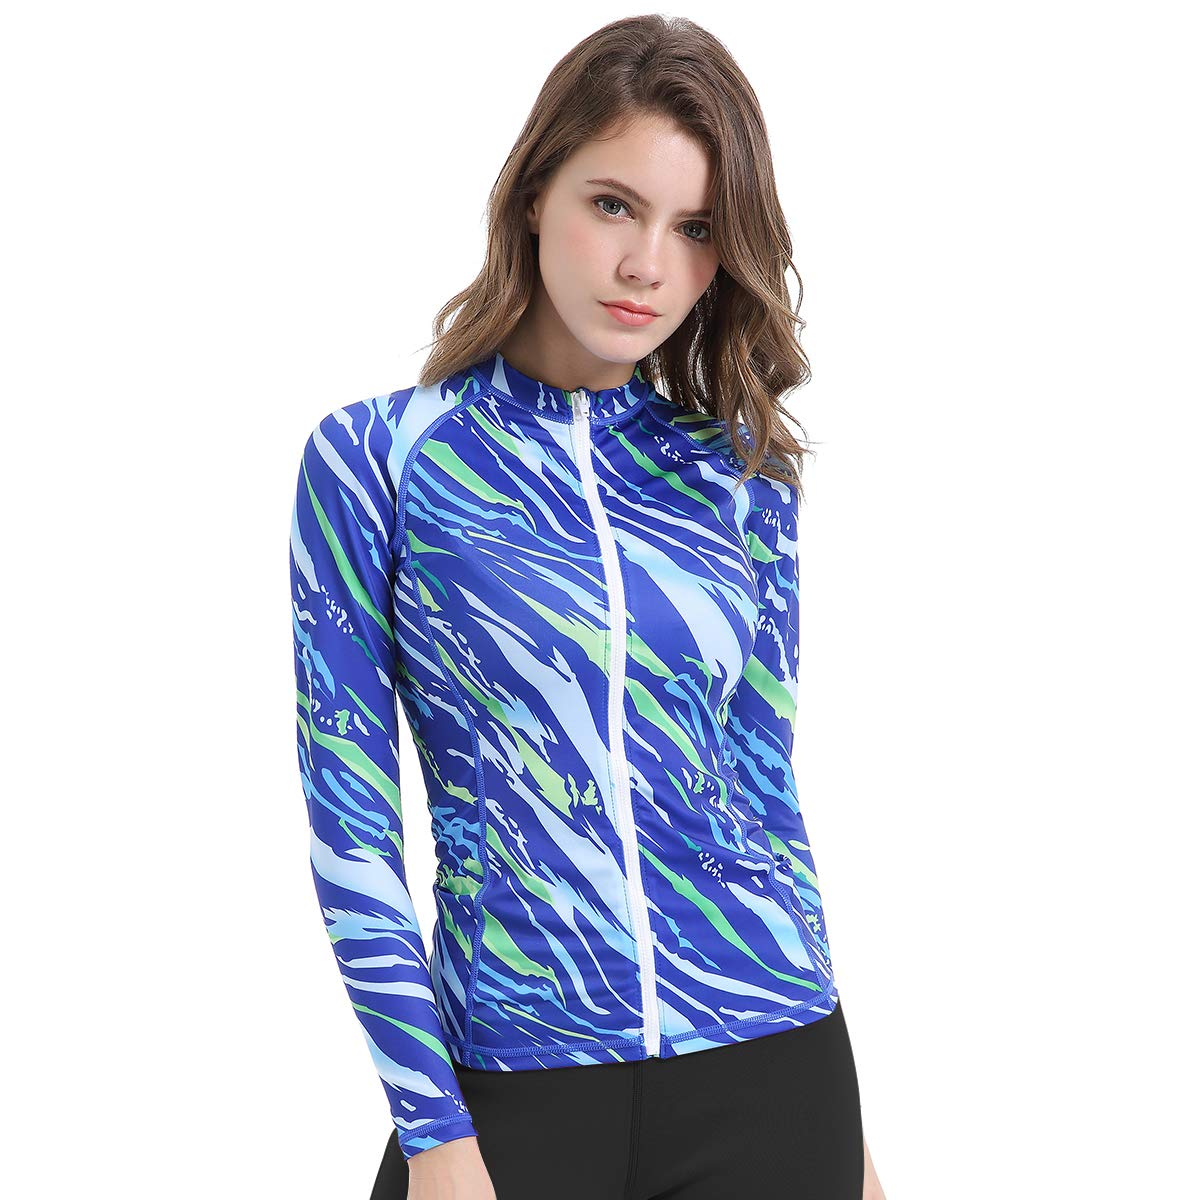 L&Sports Women Long Sleeve Rash Guard Shirt Printed Surfing Shirt Wetsuit Swimsuit Top Full Zip Front UPF UV Sun Protection (Blue, S) by L&Sports